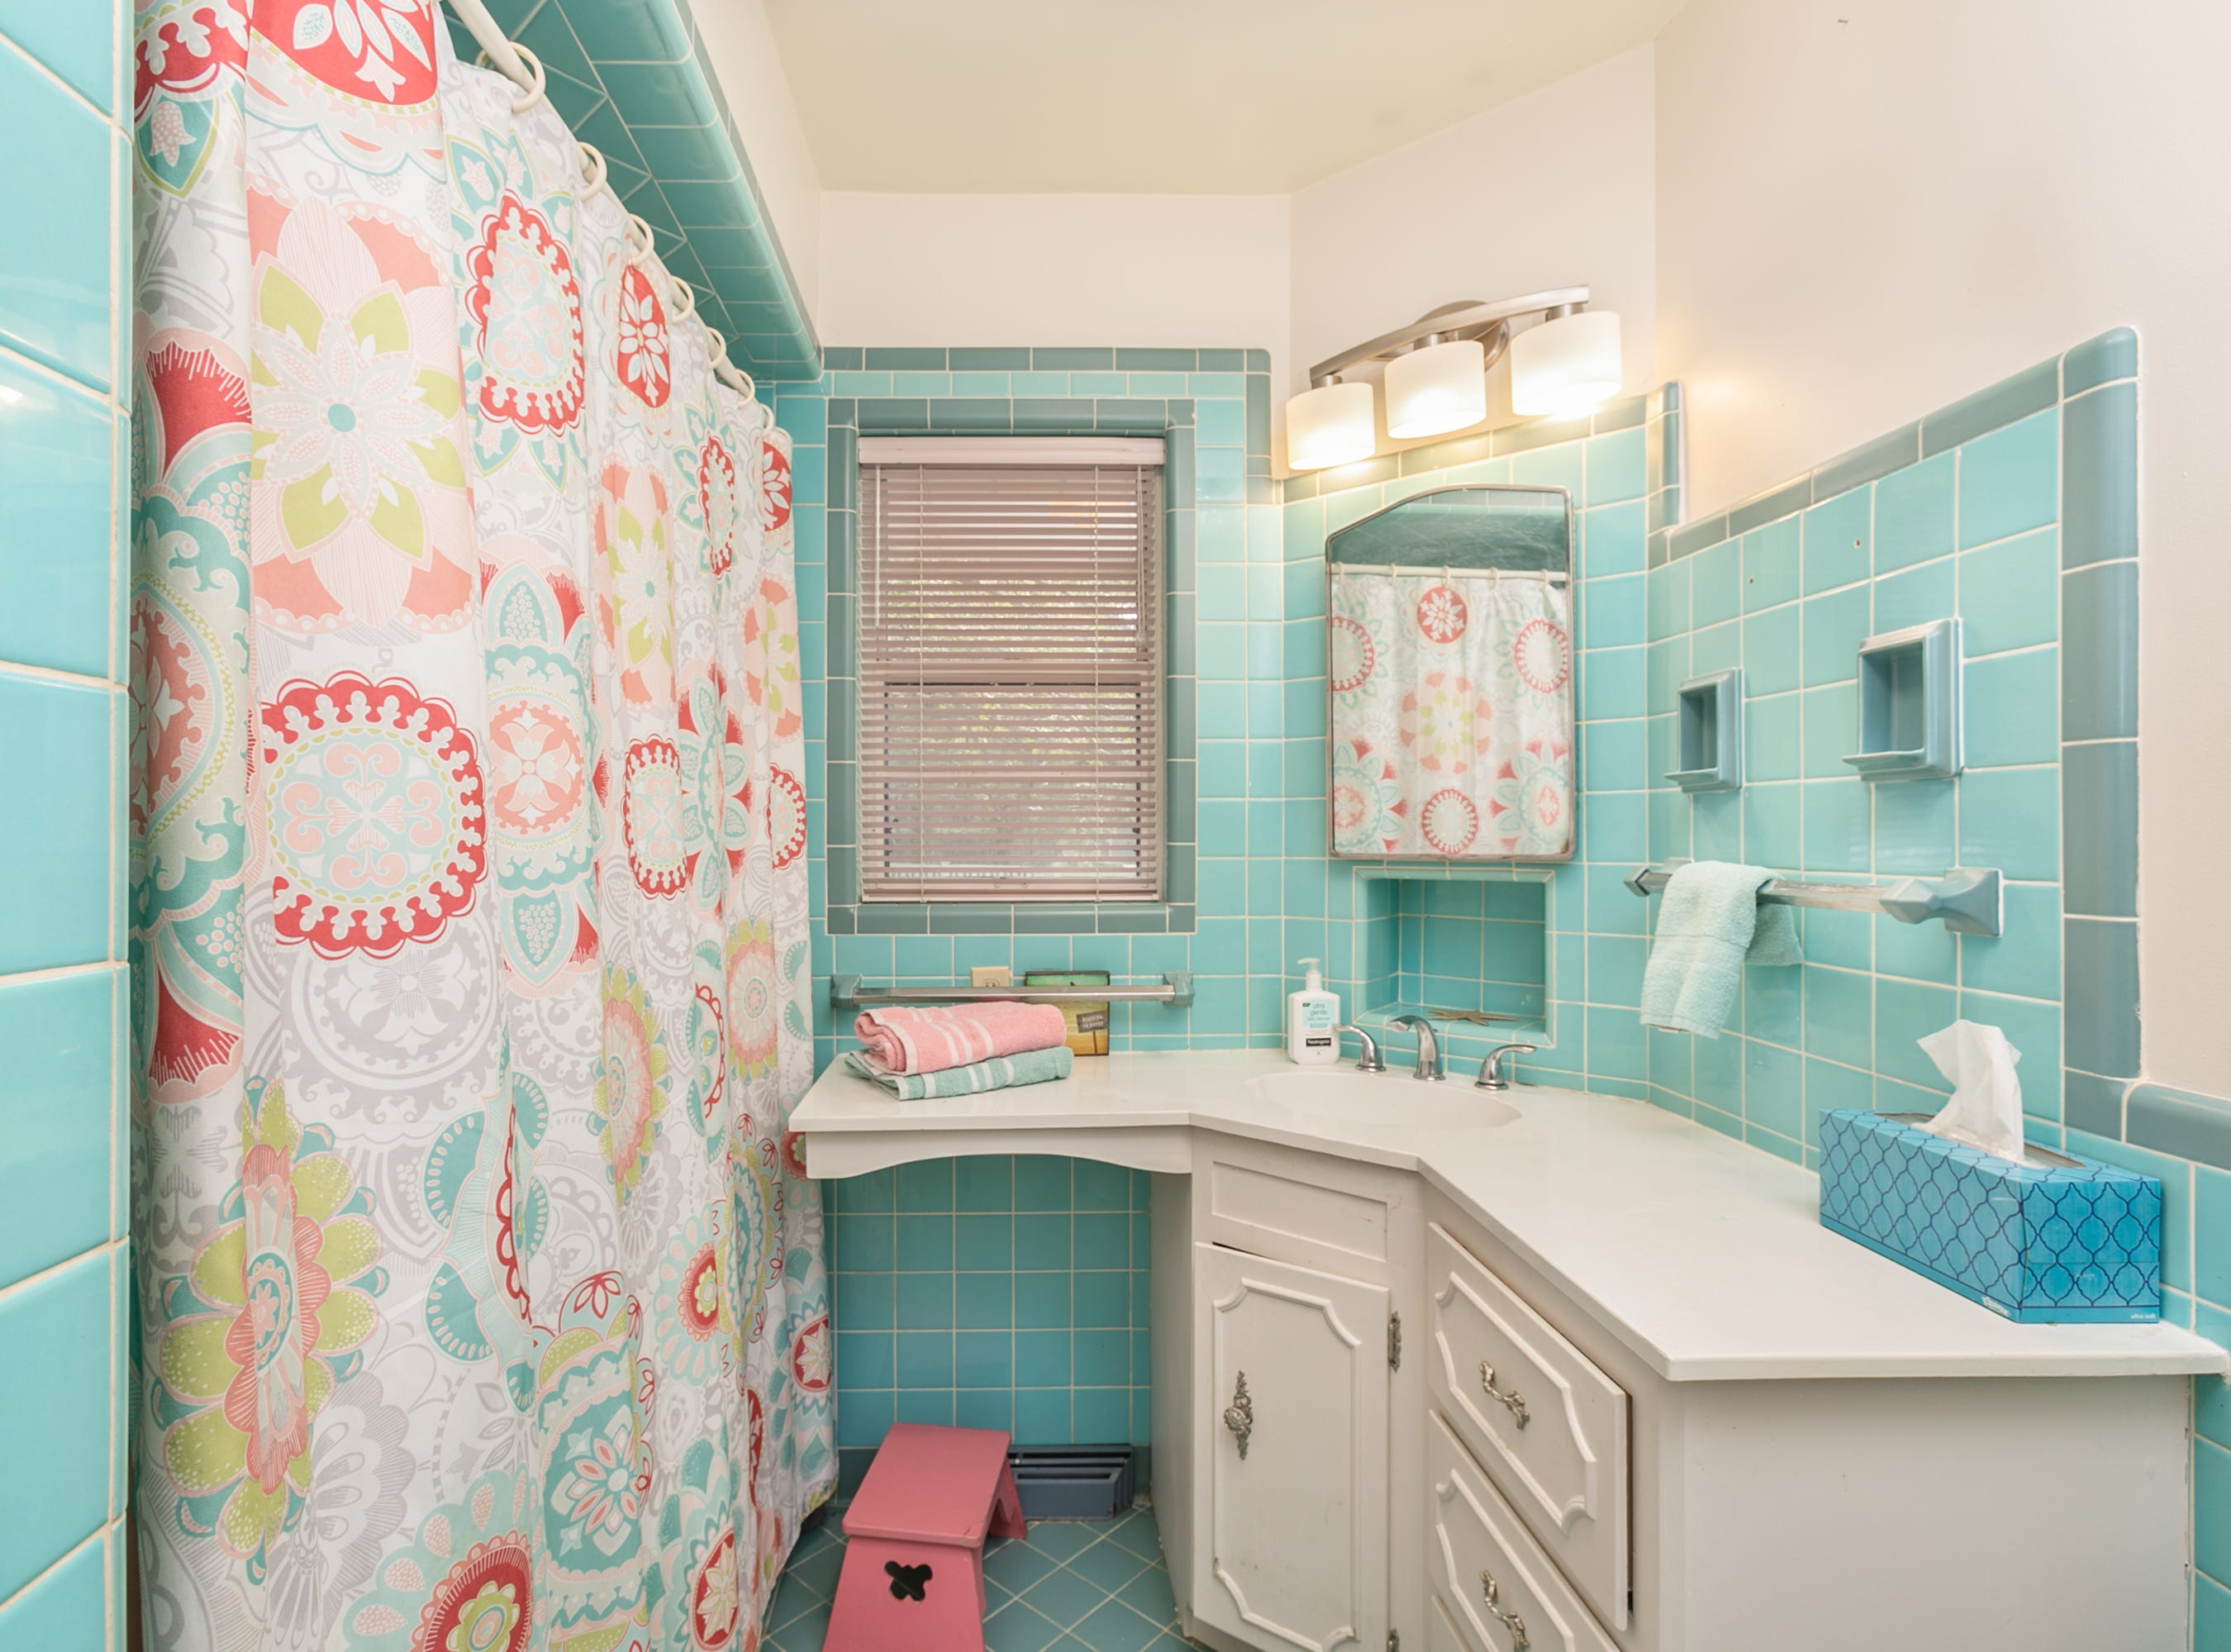 The four bathrooms and a built-in vanity are original. Even the ceilings in the showers are tiled, a rarity today. Keri suspects a second built-in bedroom vanity is concealed by a bedroom wall. That could be a fun discovery for future owners.